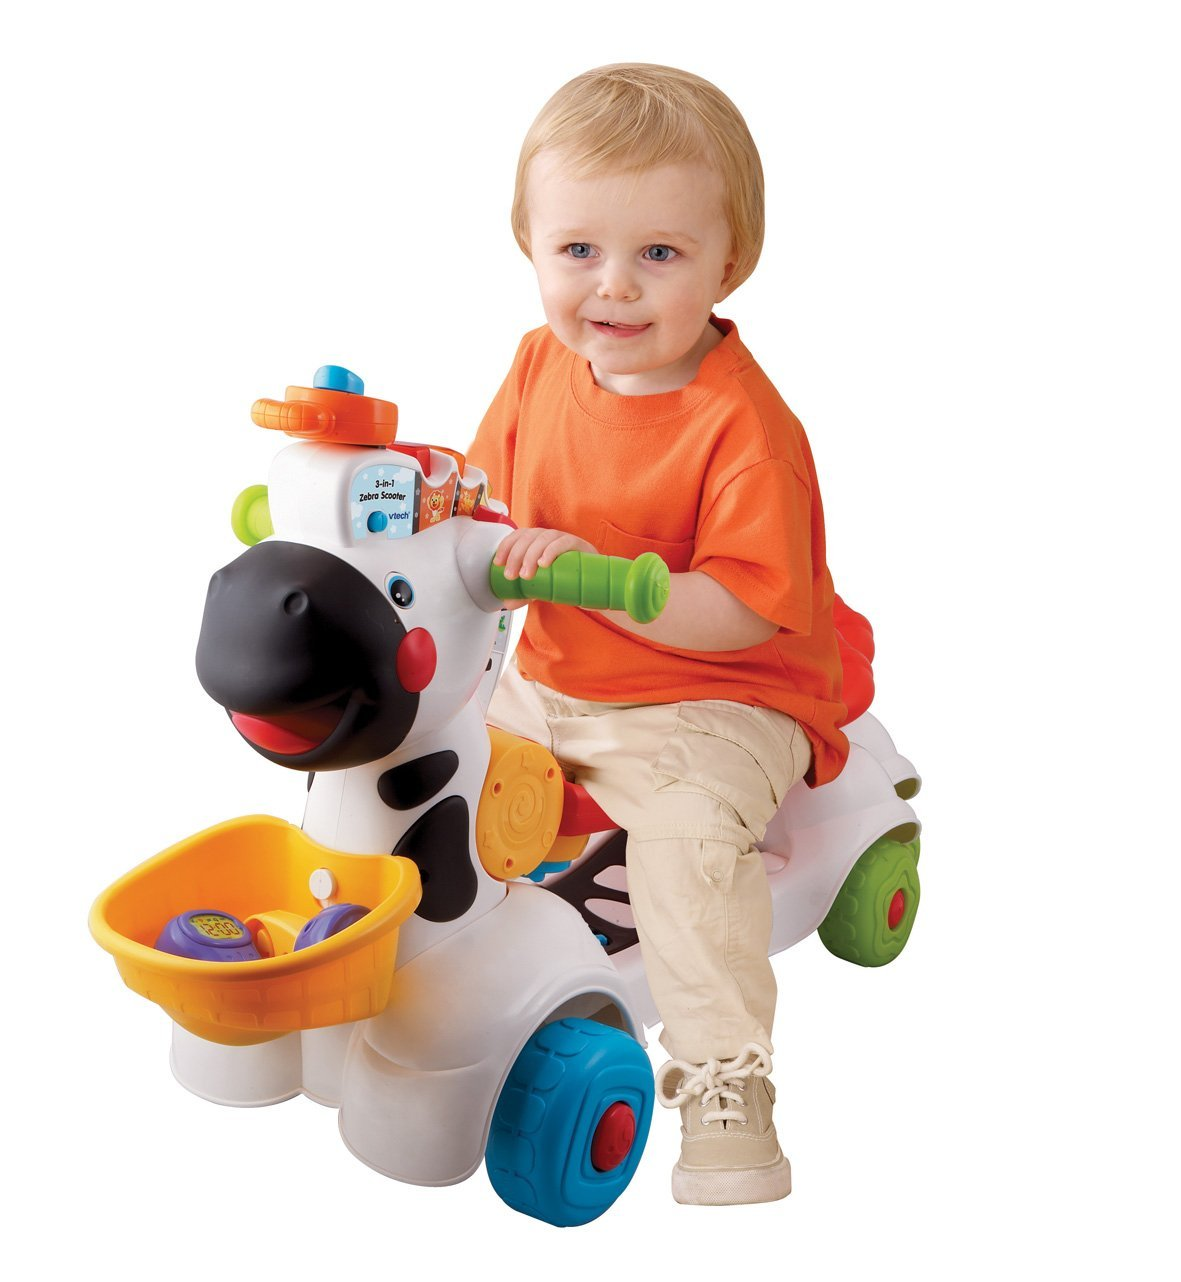 Toys For Old : Best gifts ideas for one year old boys first birthday